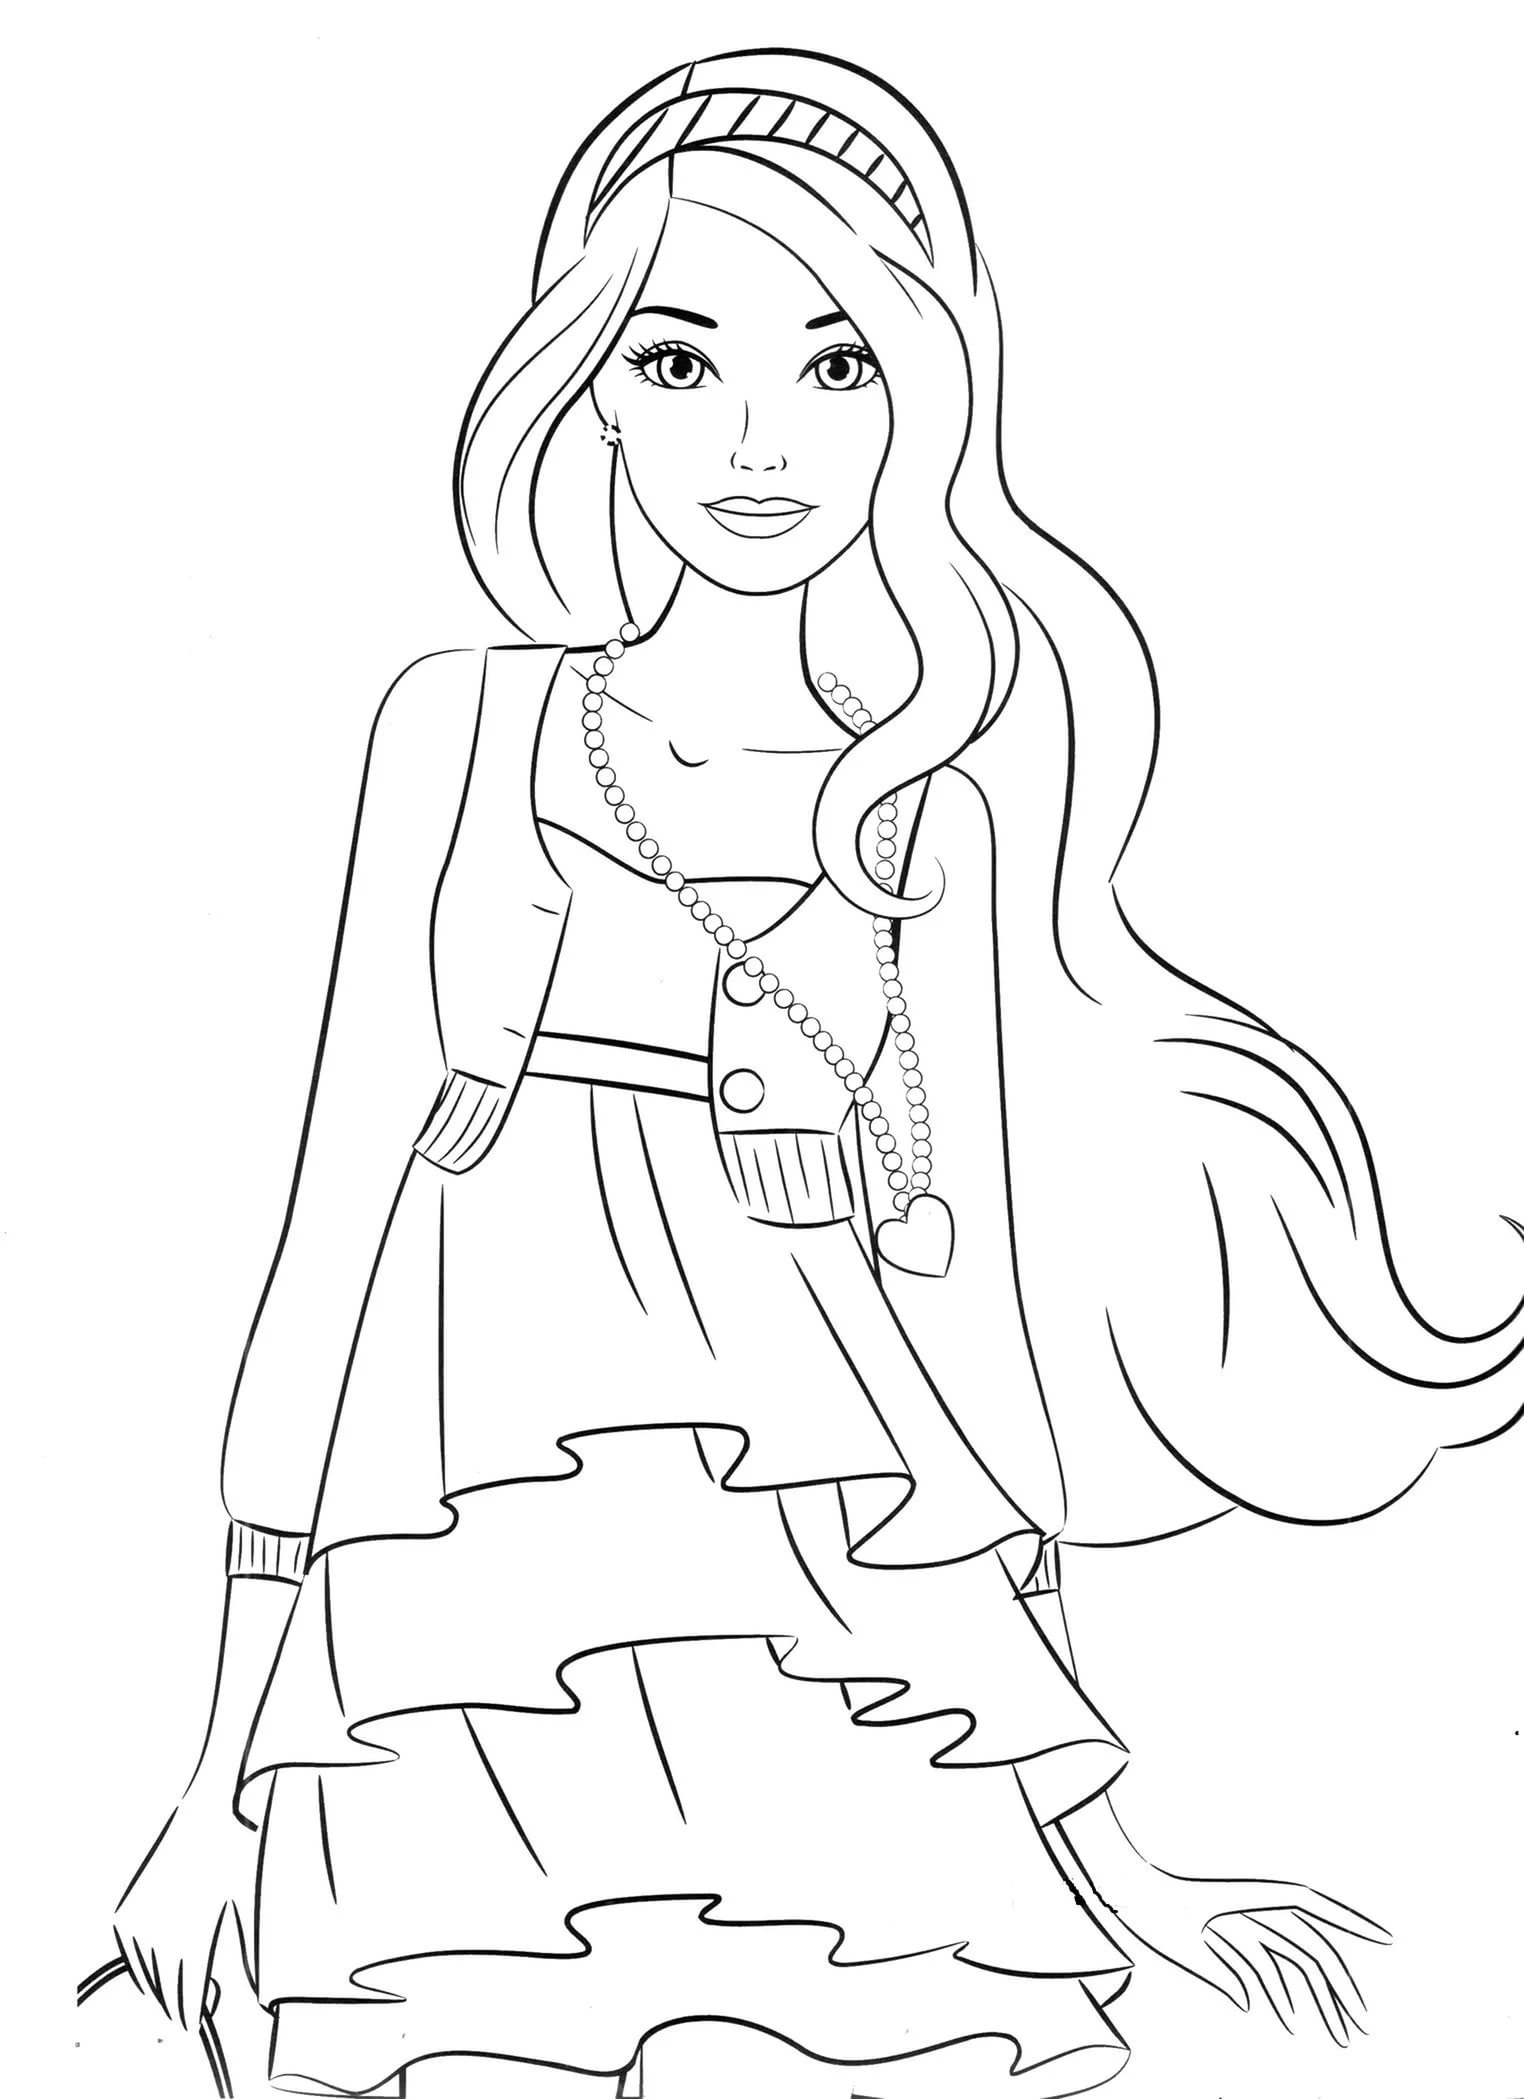 Free colouring pages for 10 year olds - Ladies Coloring Pages